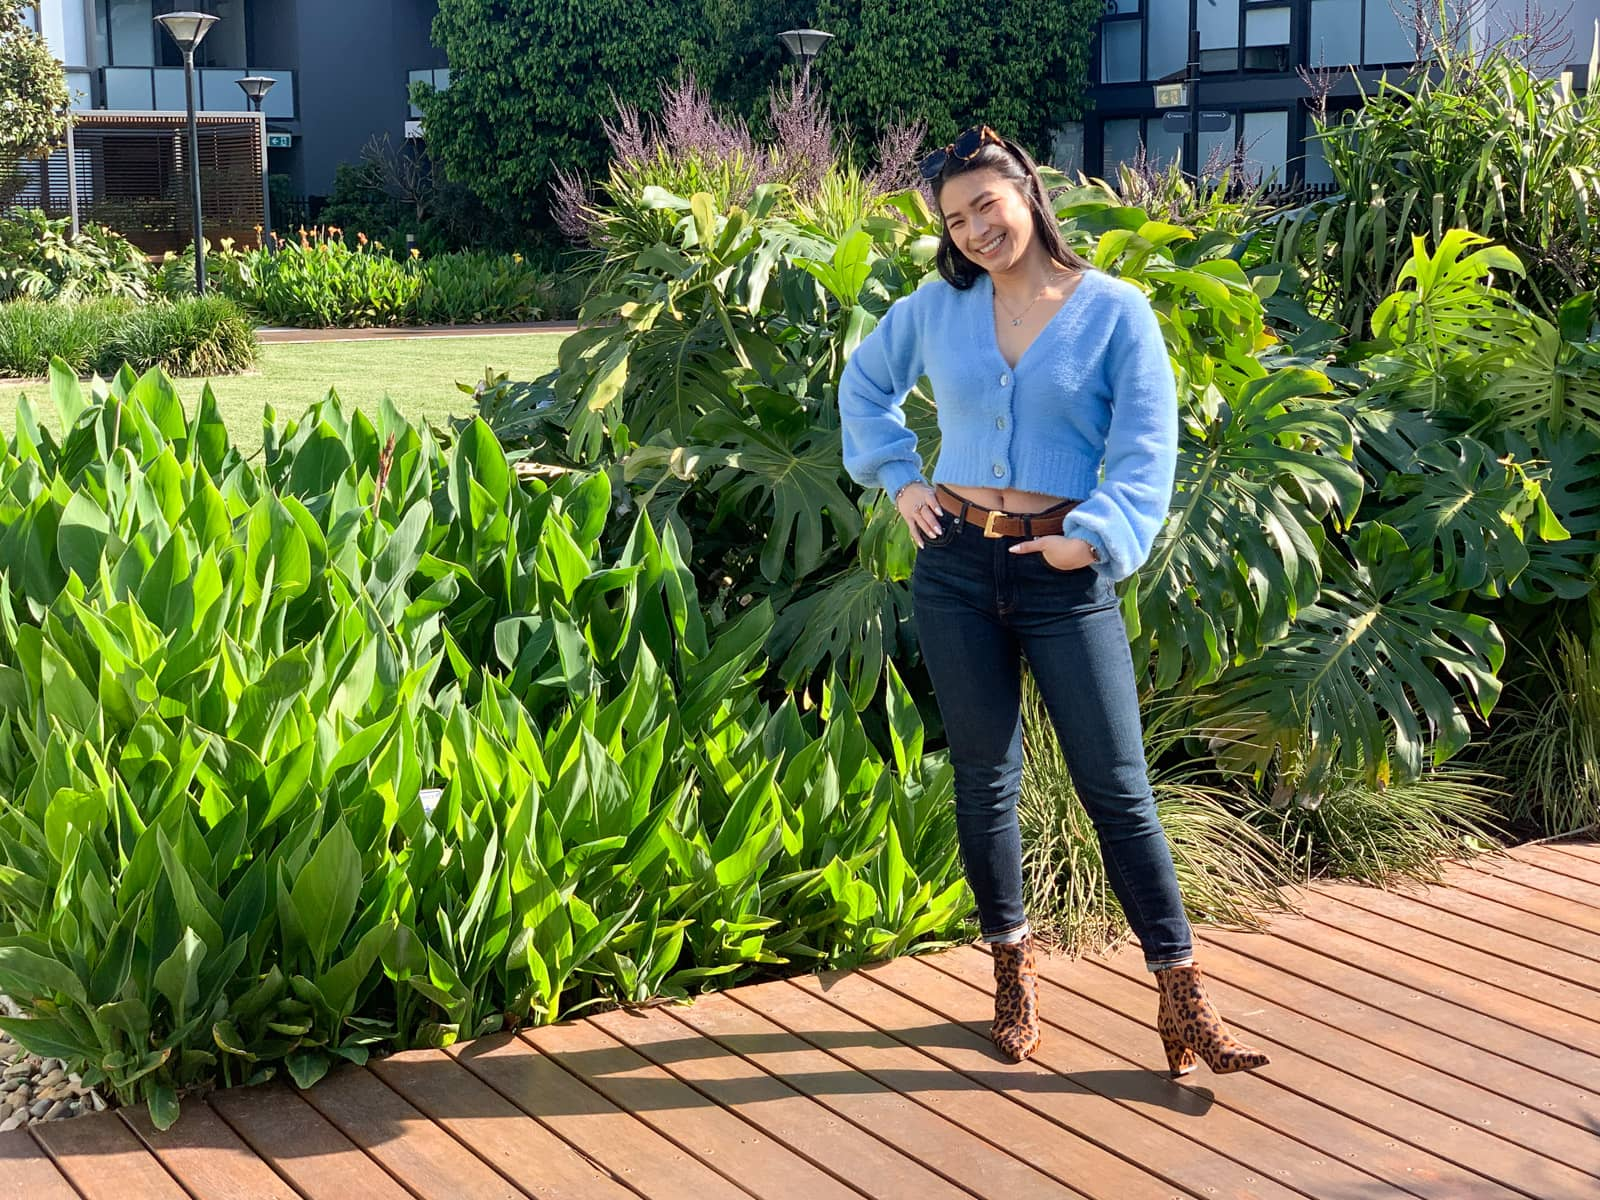 The same woman in the previous photo on this page, in the same outfit. She is standing on a wooden boardwalk with a hand on her hip and another in her jeans pocket. Behind her are some large green plants.